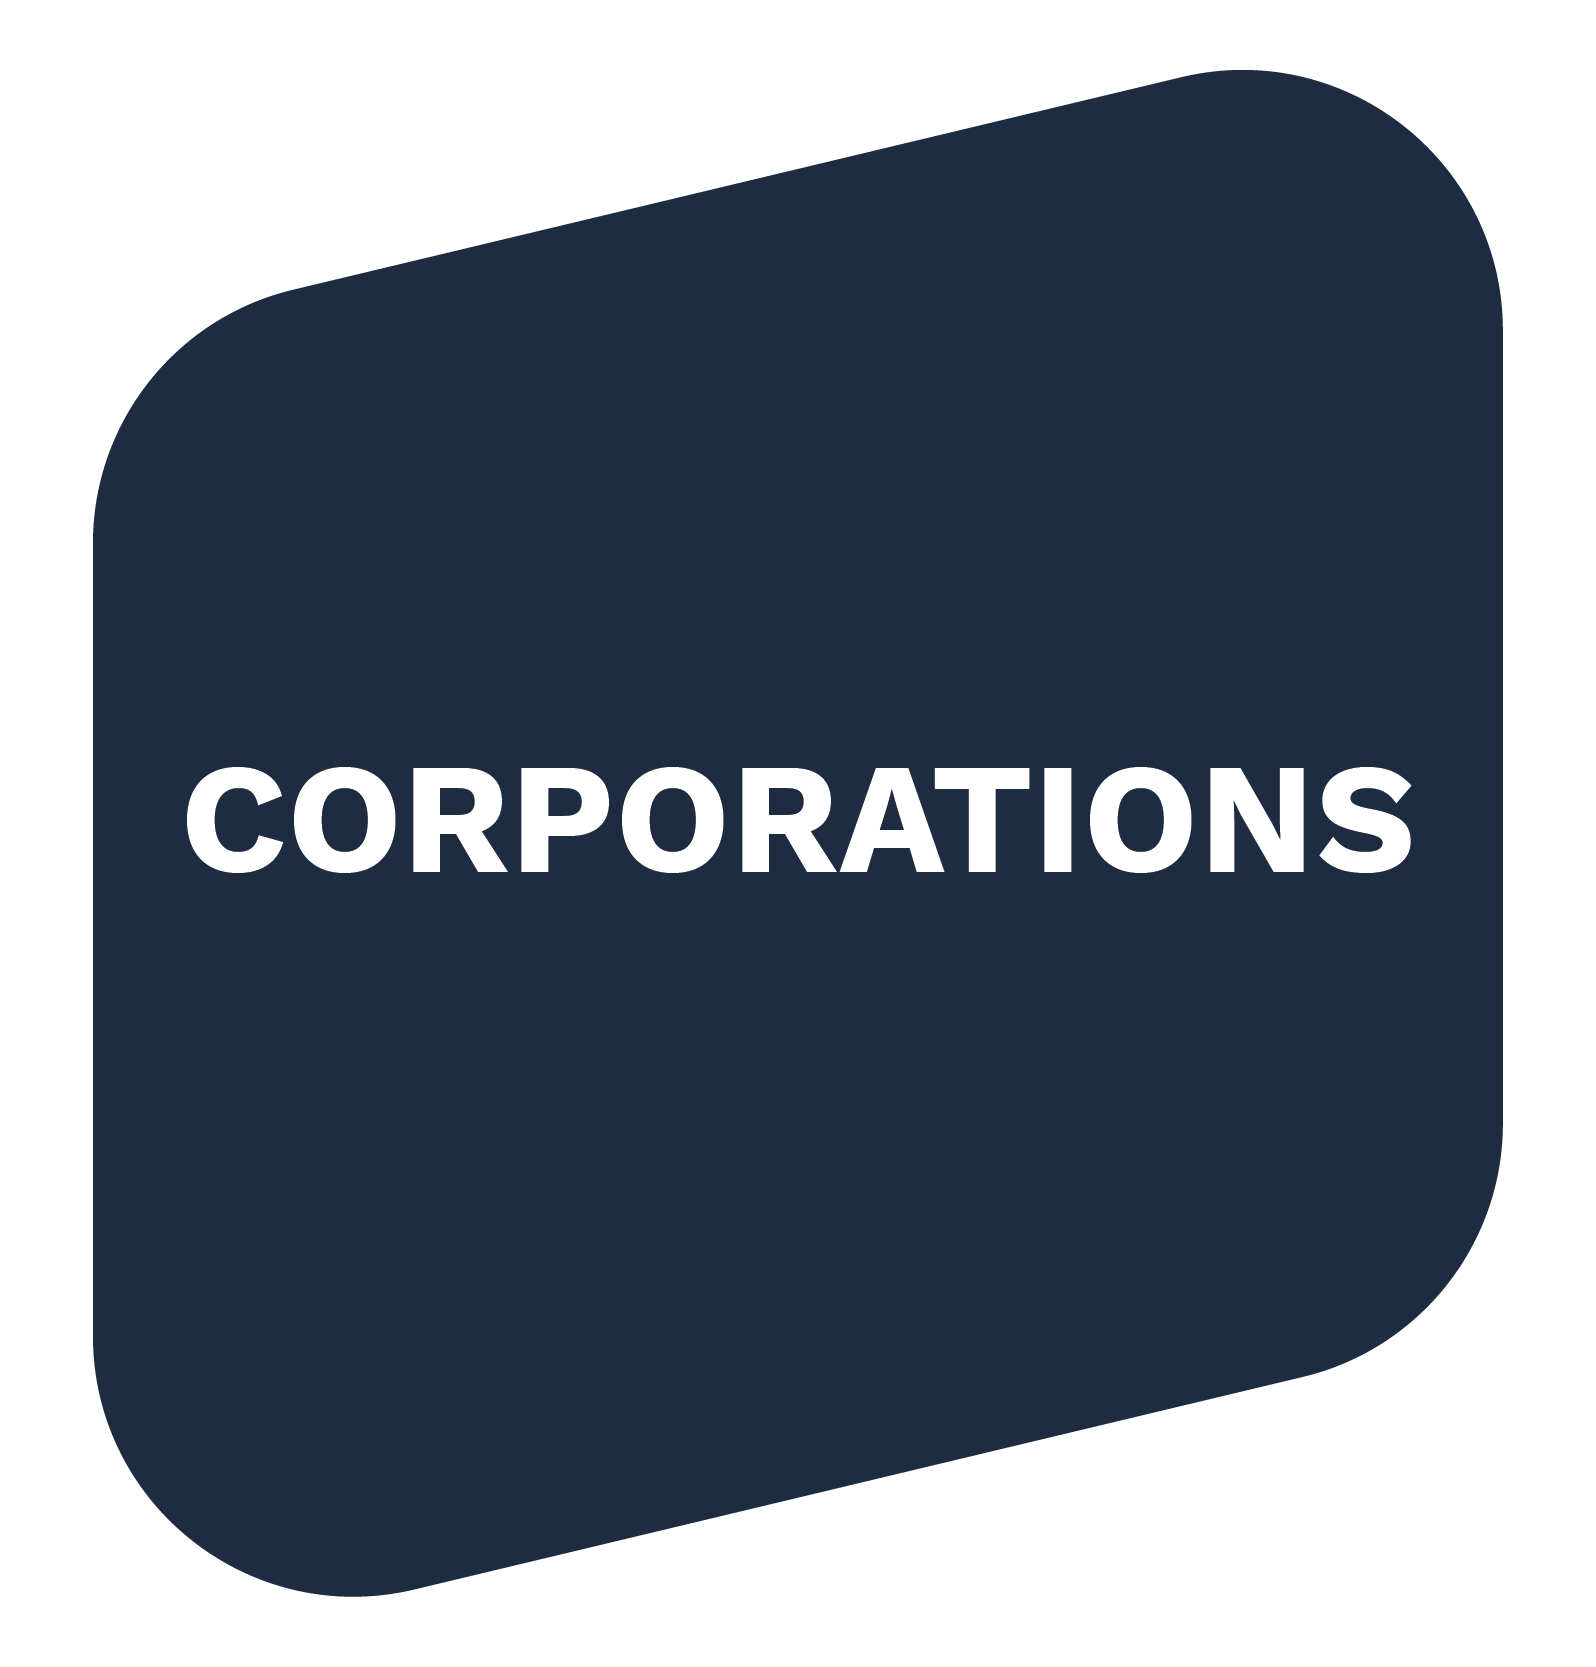 corporations-01.png